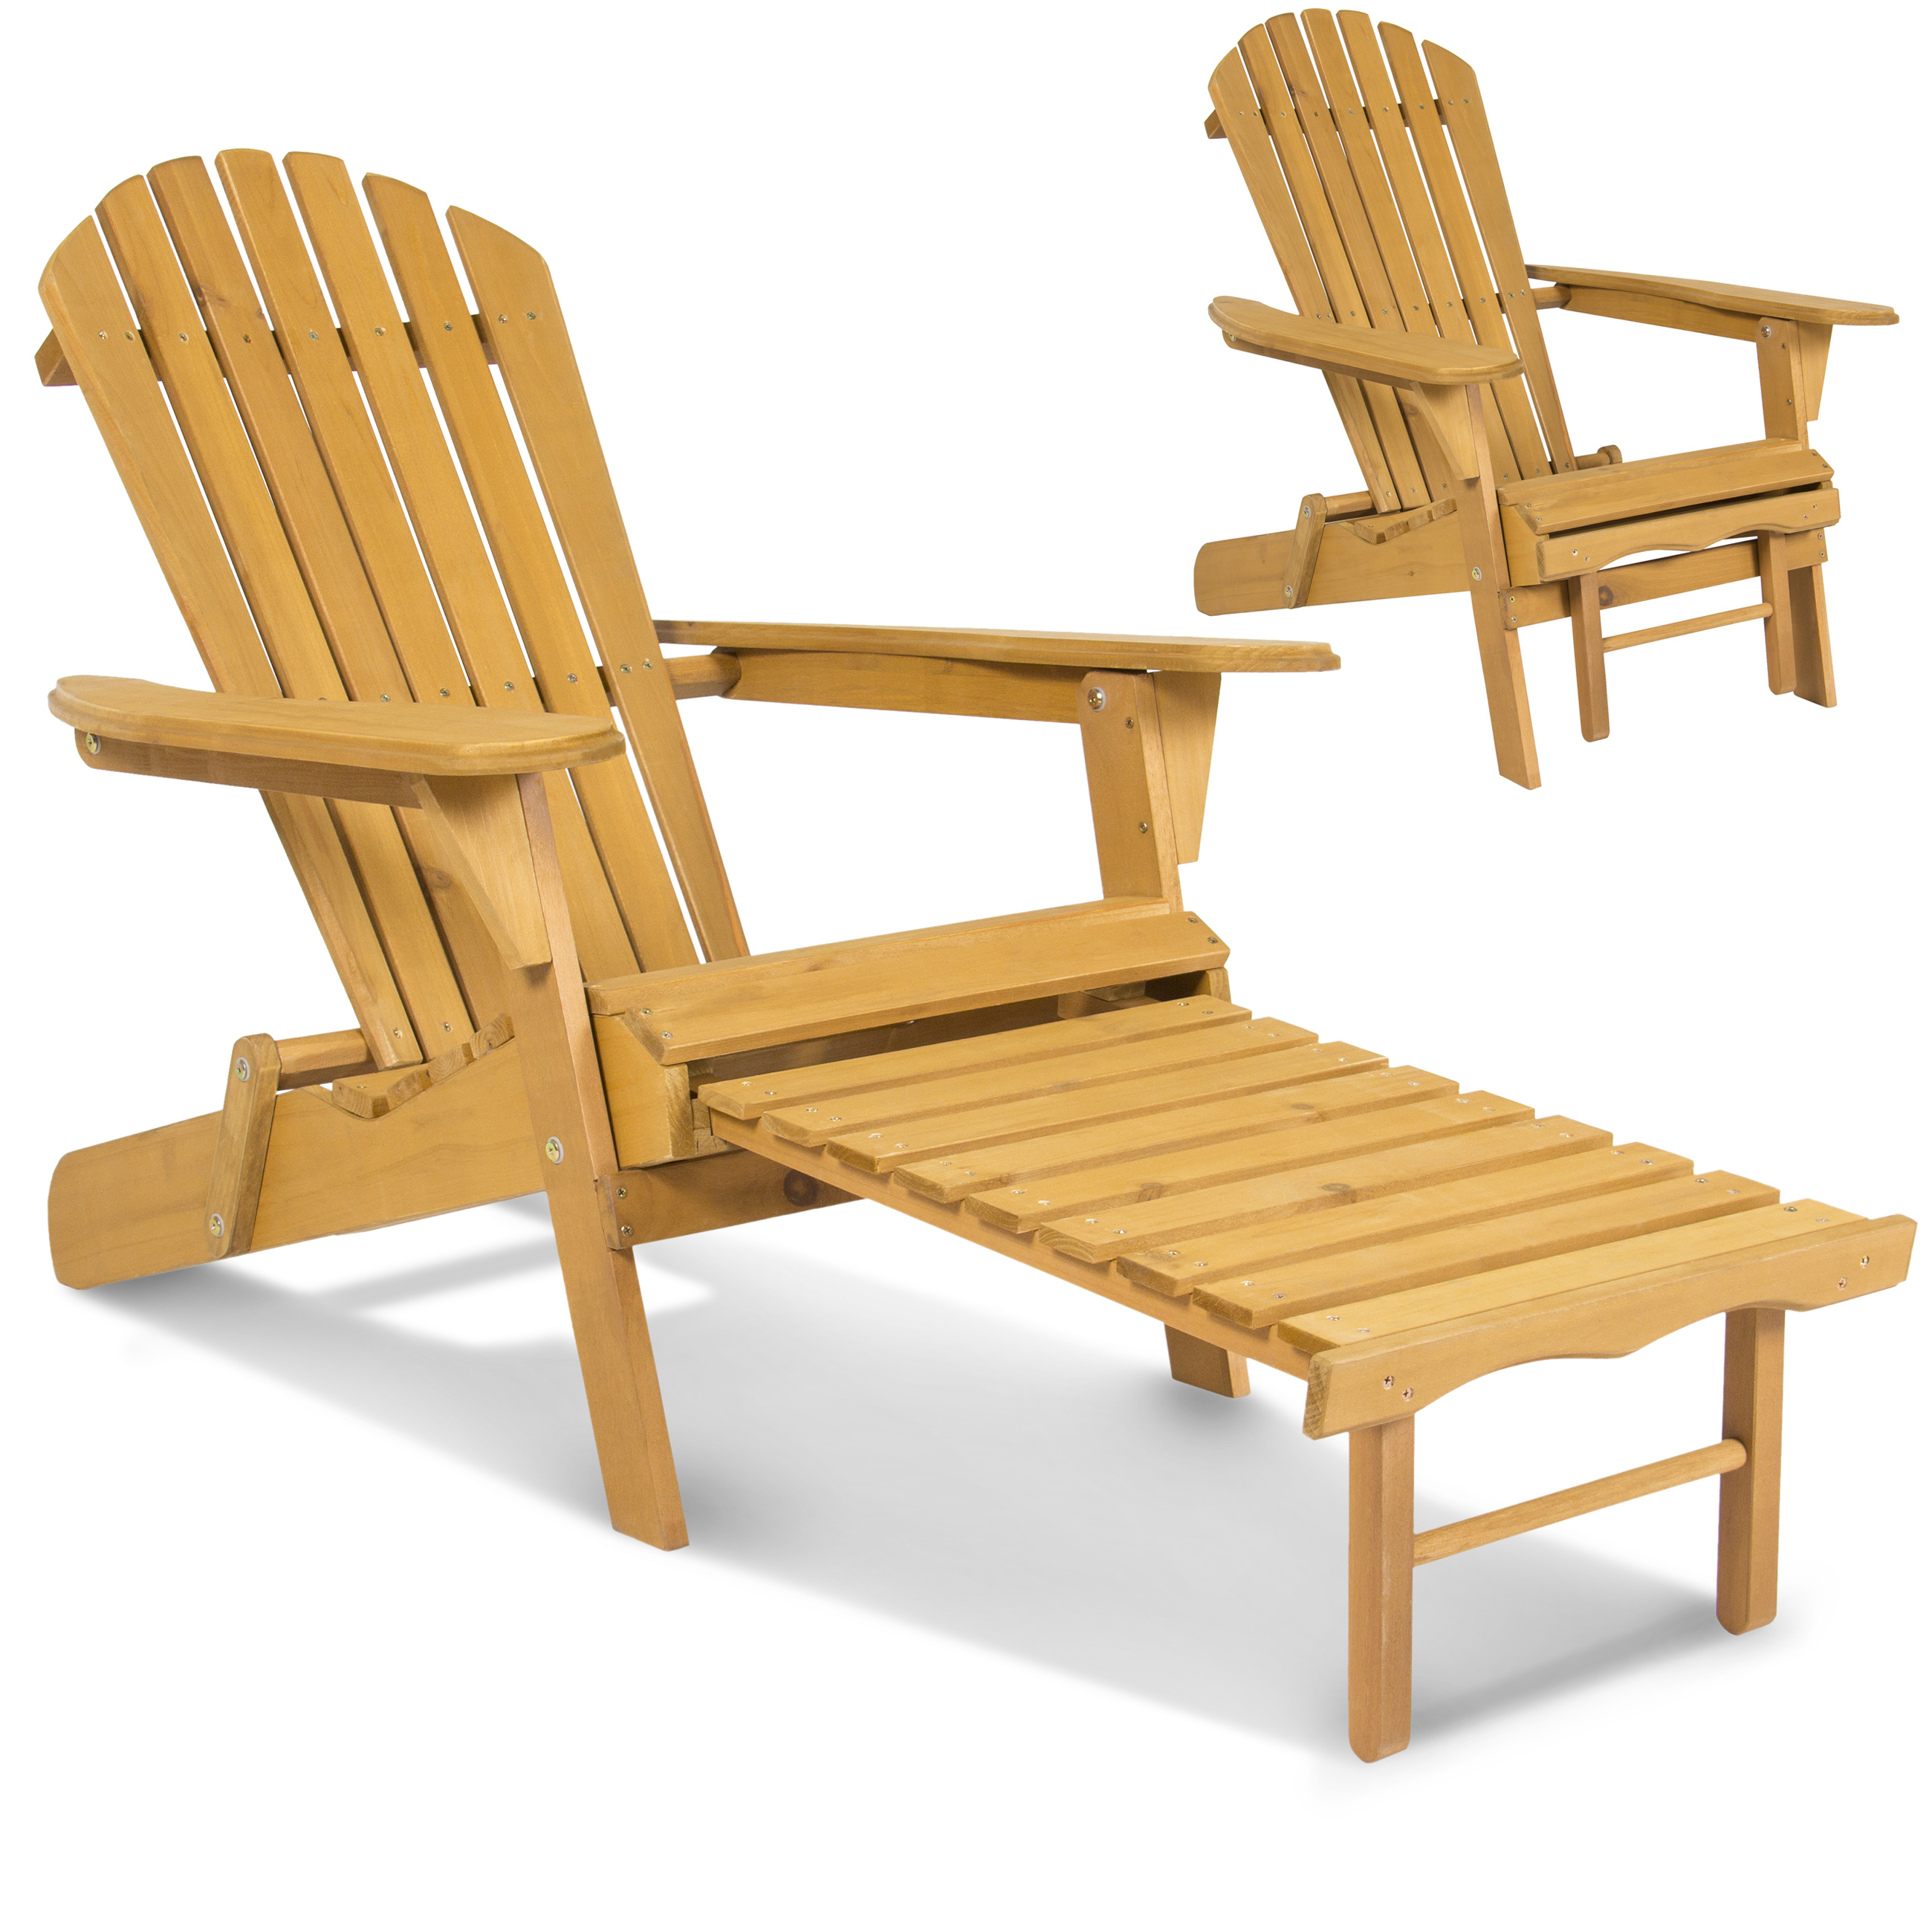 Best Choice Products Foldable Wood Adirondack Chair W Pull Out Ottoman